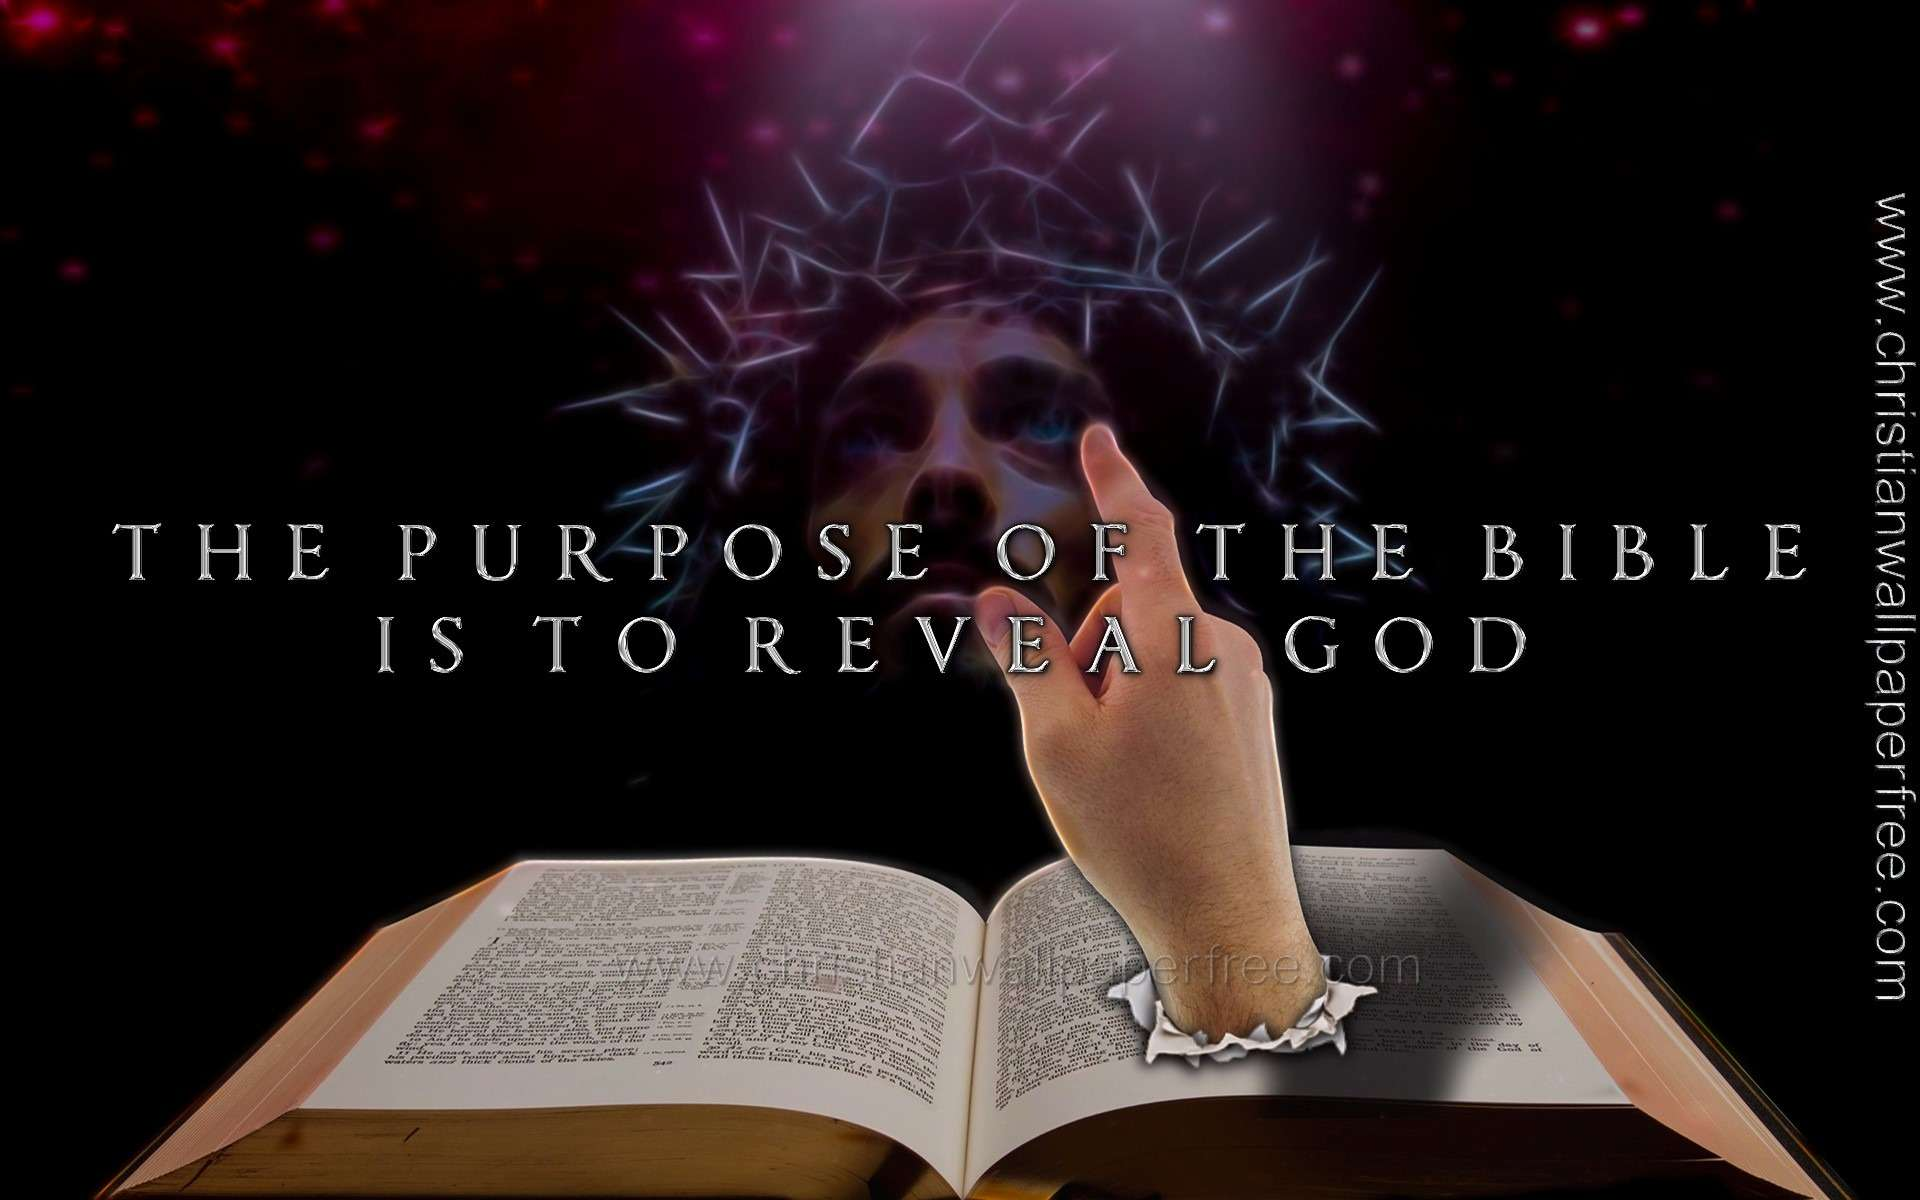 The Purpose of the Bible Is